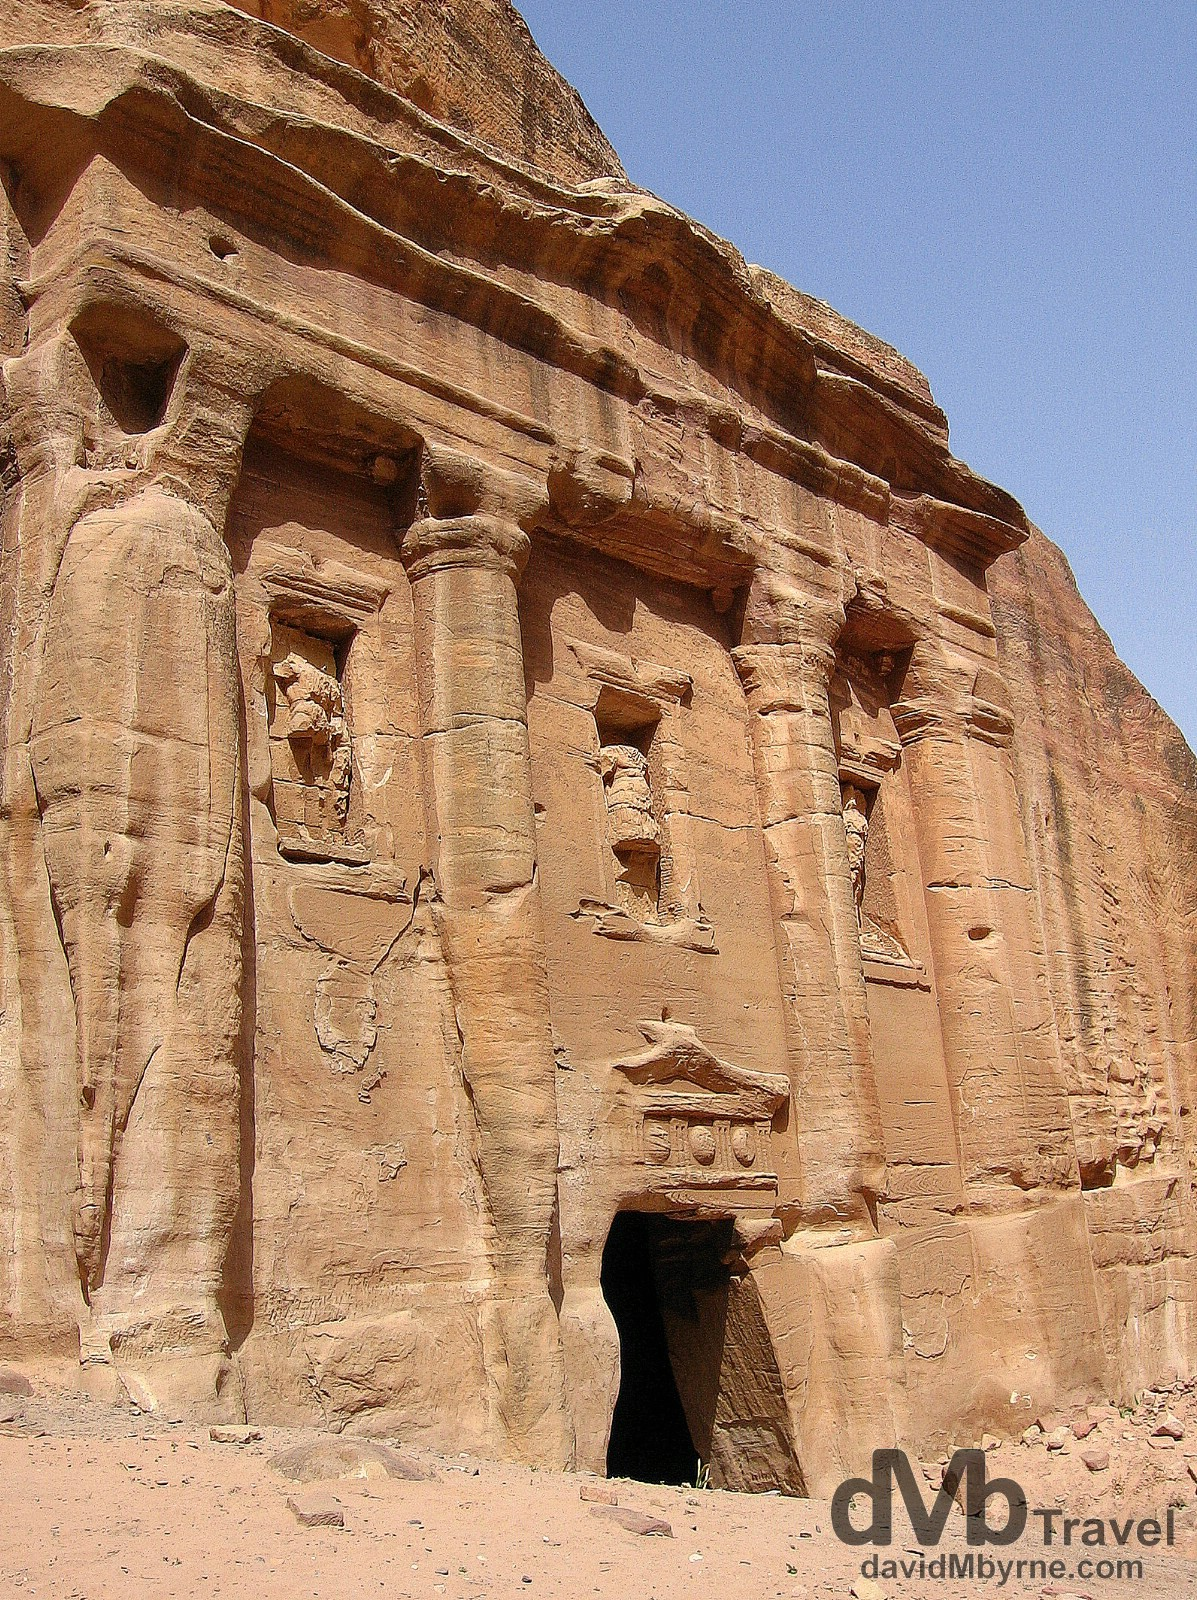 A weather-worn solid rock facade in Petra, Jordan. April 27, 2008.